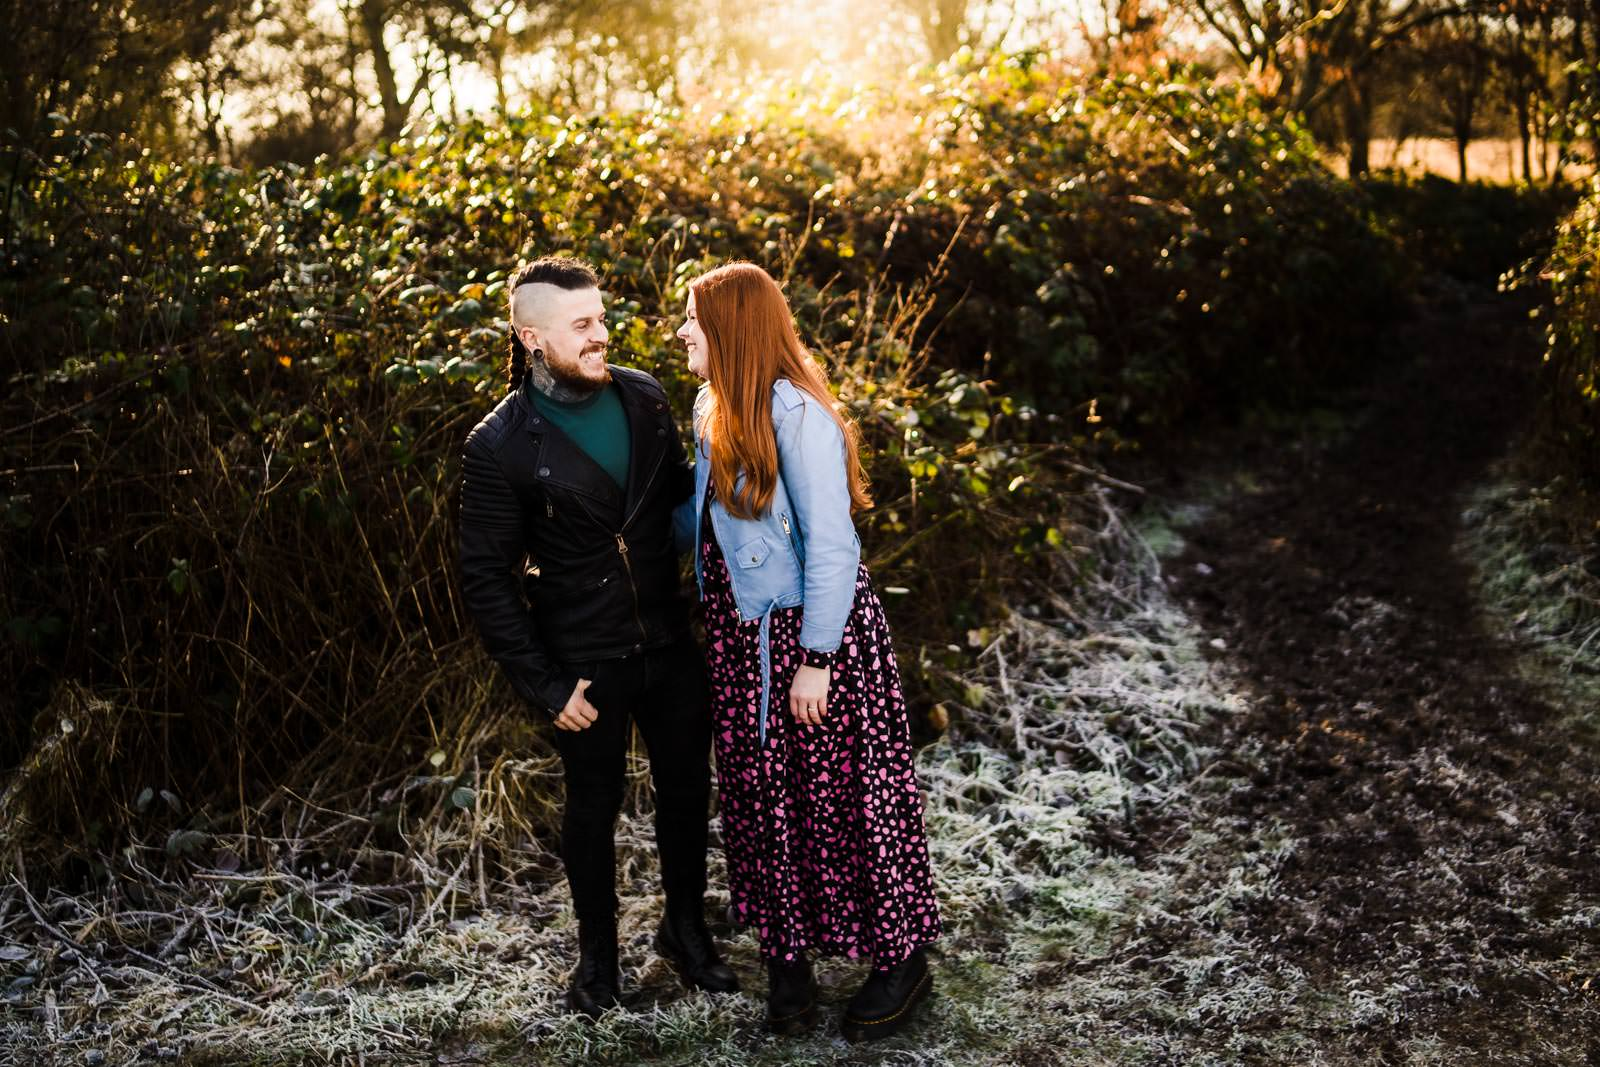 Couple at Delapre abbey for an engagement shoot, standing in frost